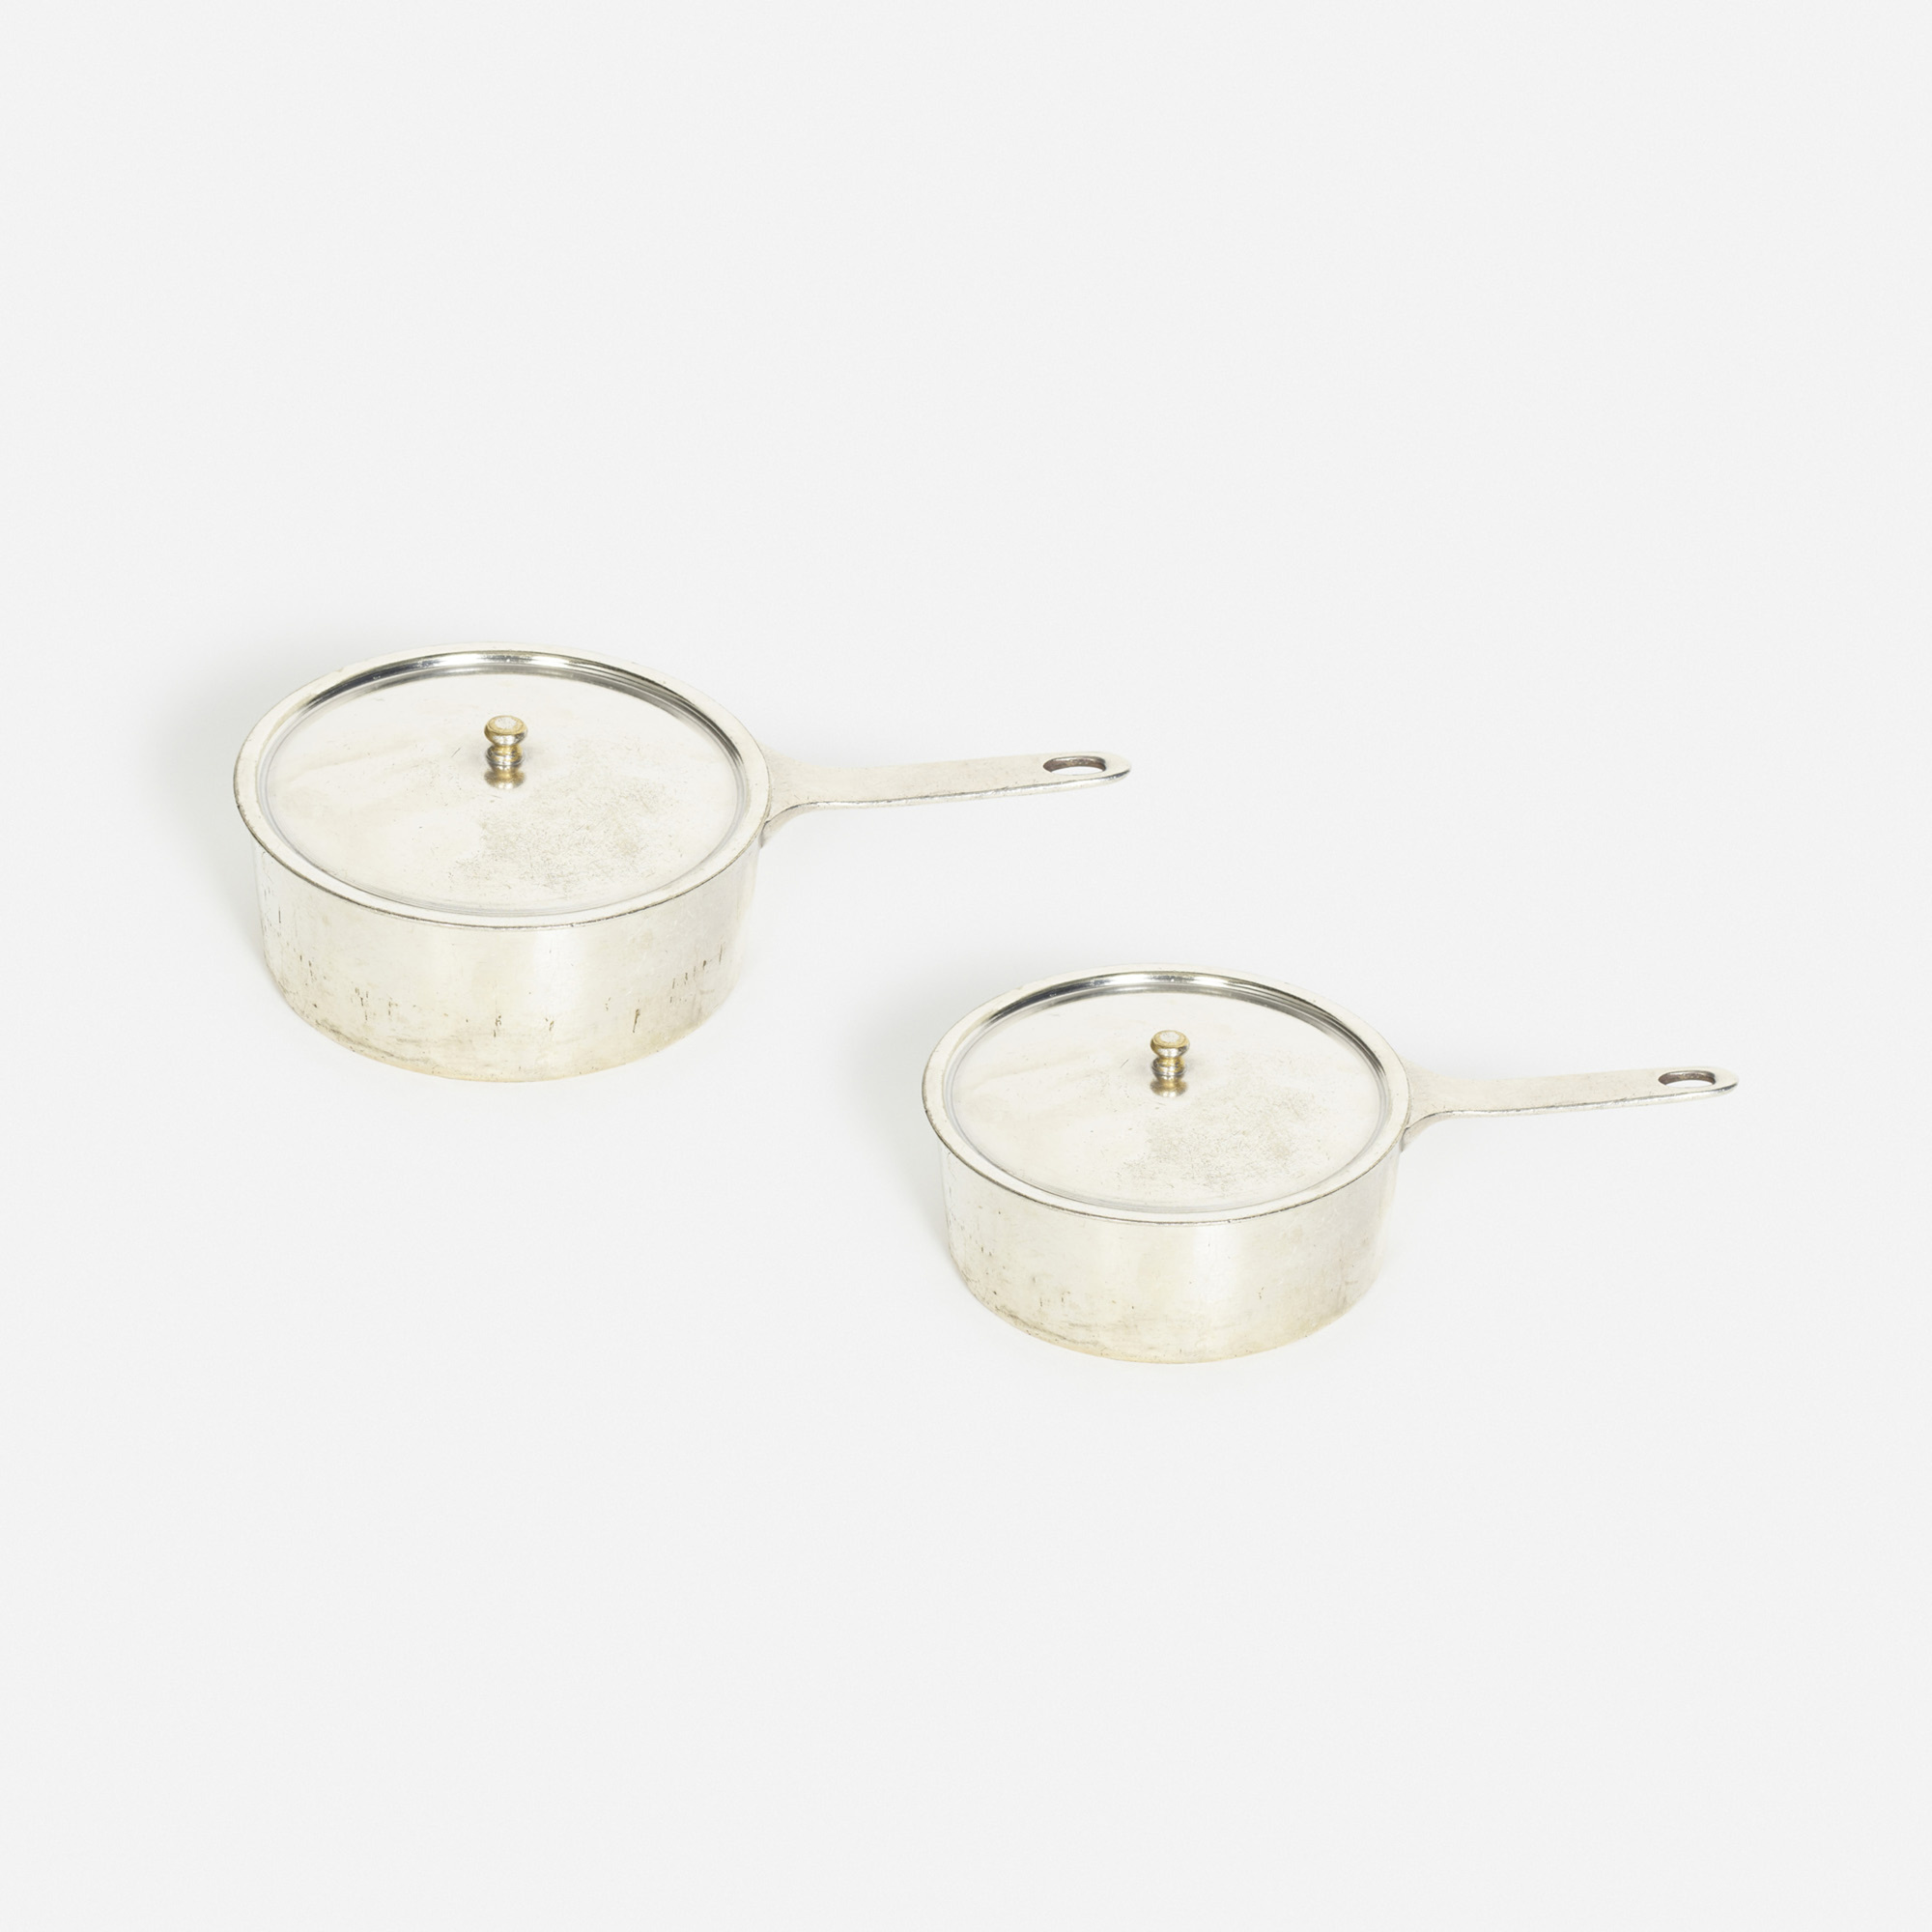 862: Garth and Ada Louise Huxtable / sauce pots from the kitchen of The Four Seasons, set of two (1 of 1)